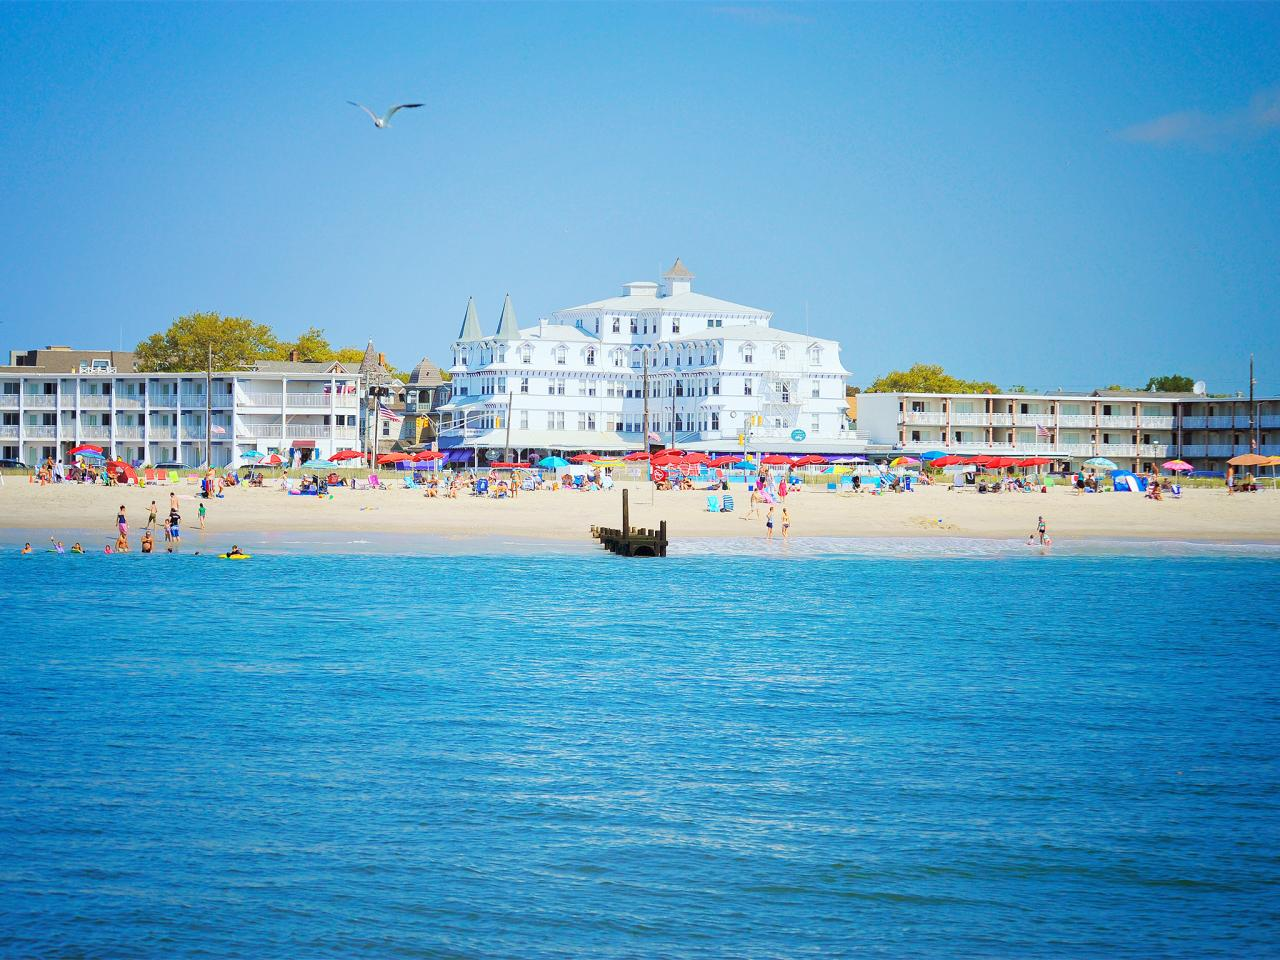 jersey beaches nj beach shore cape travel places visit vacation shoreline county travelchannel channel america lifehacked1st spots resorts outline rend